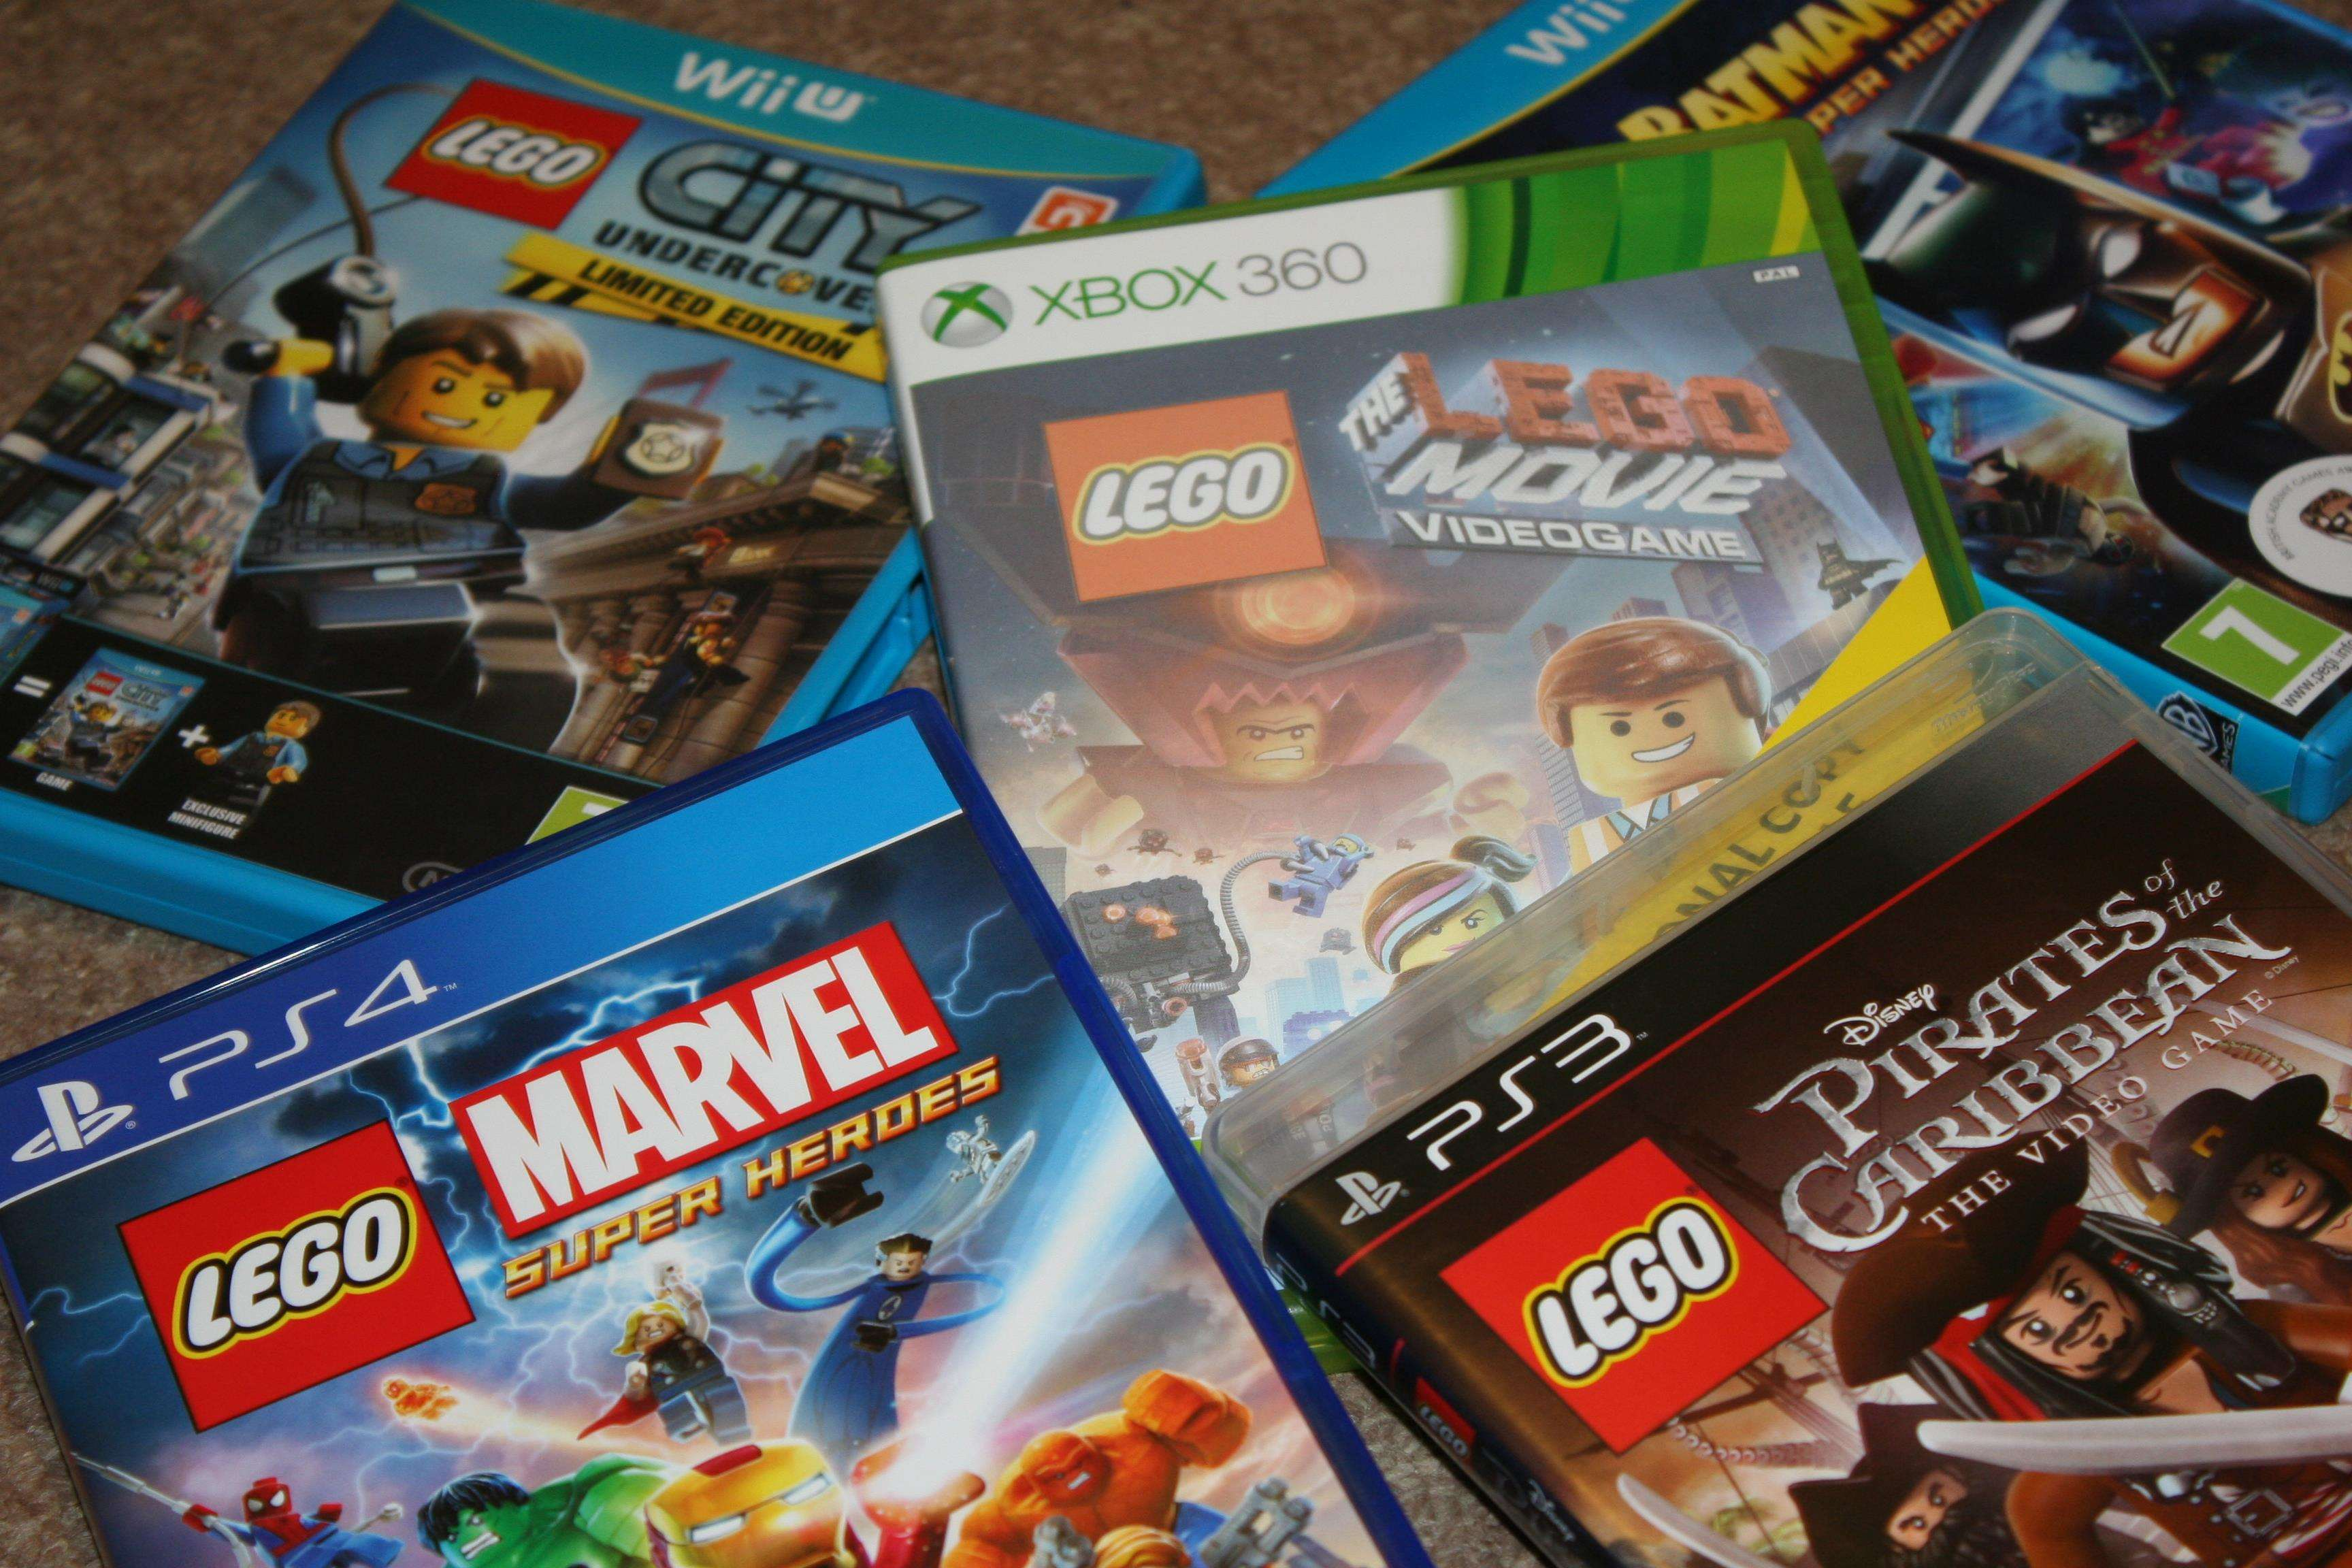 Buy a Lego video game...Any of them!, IMG 2119%, uncategorised%